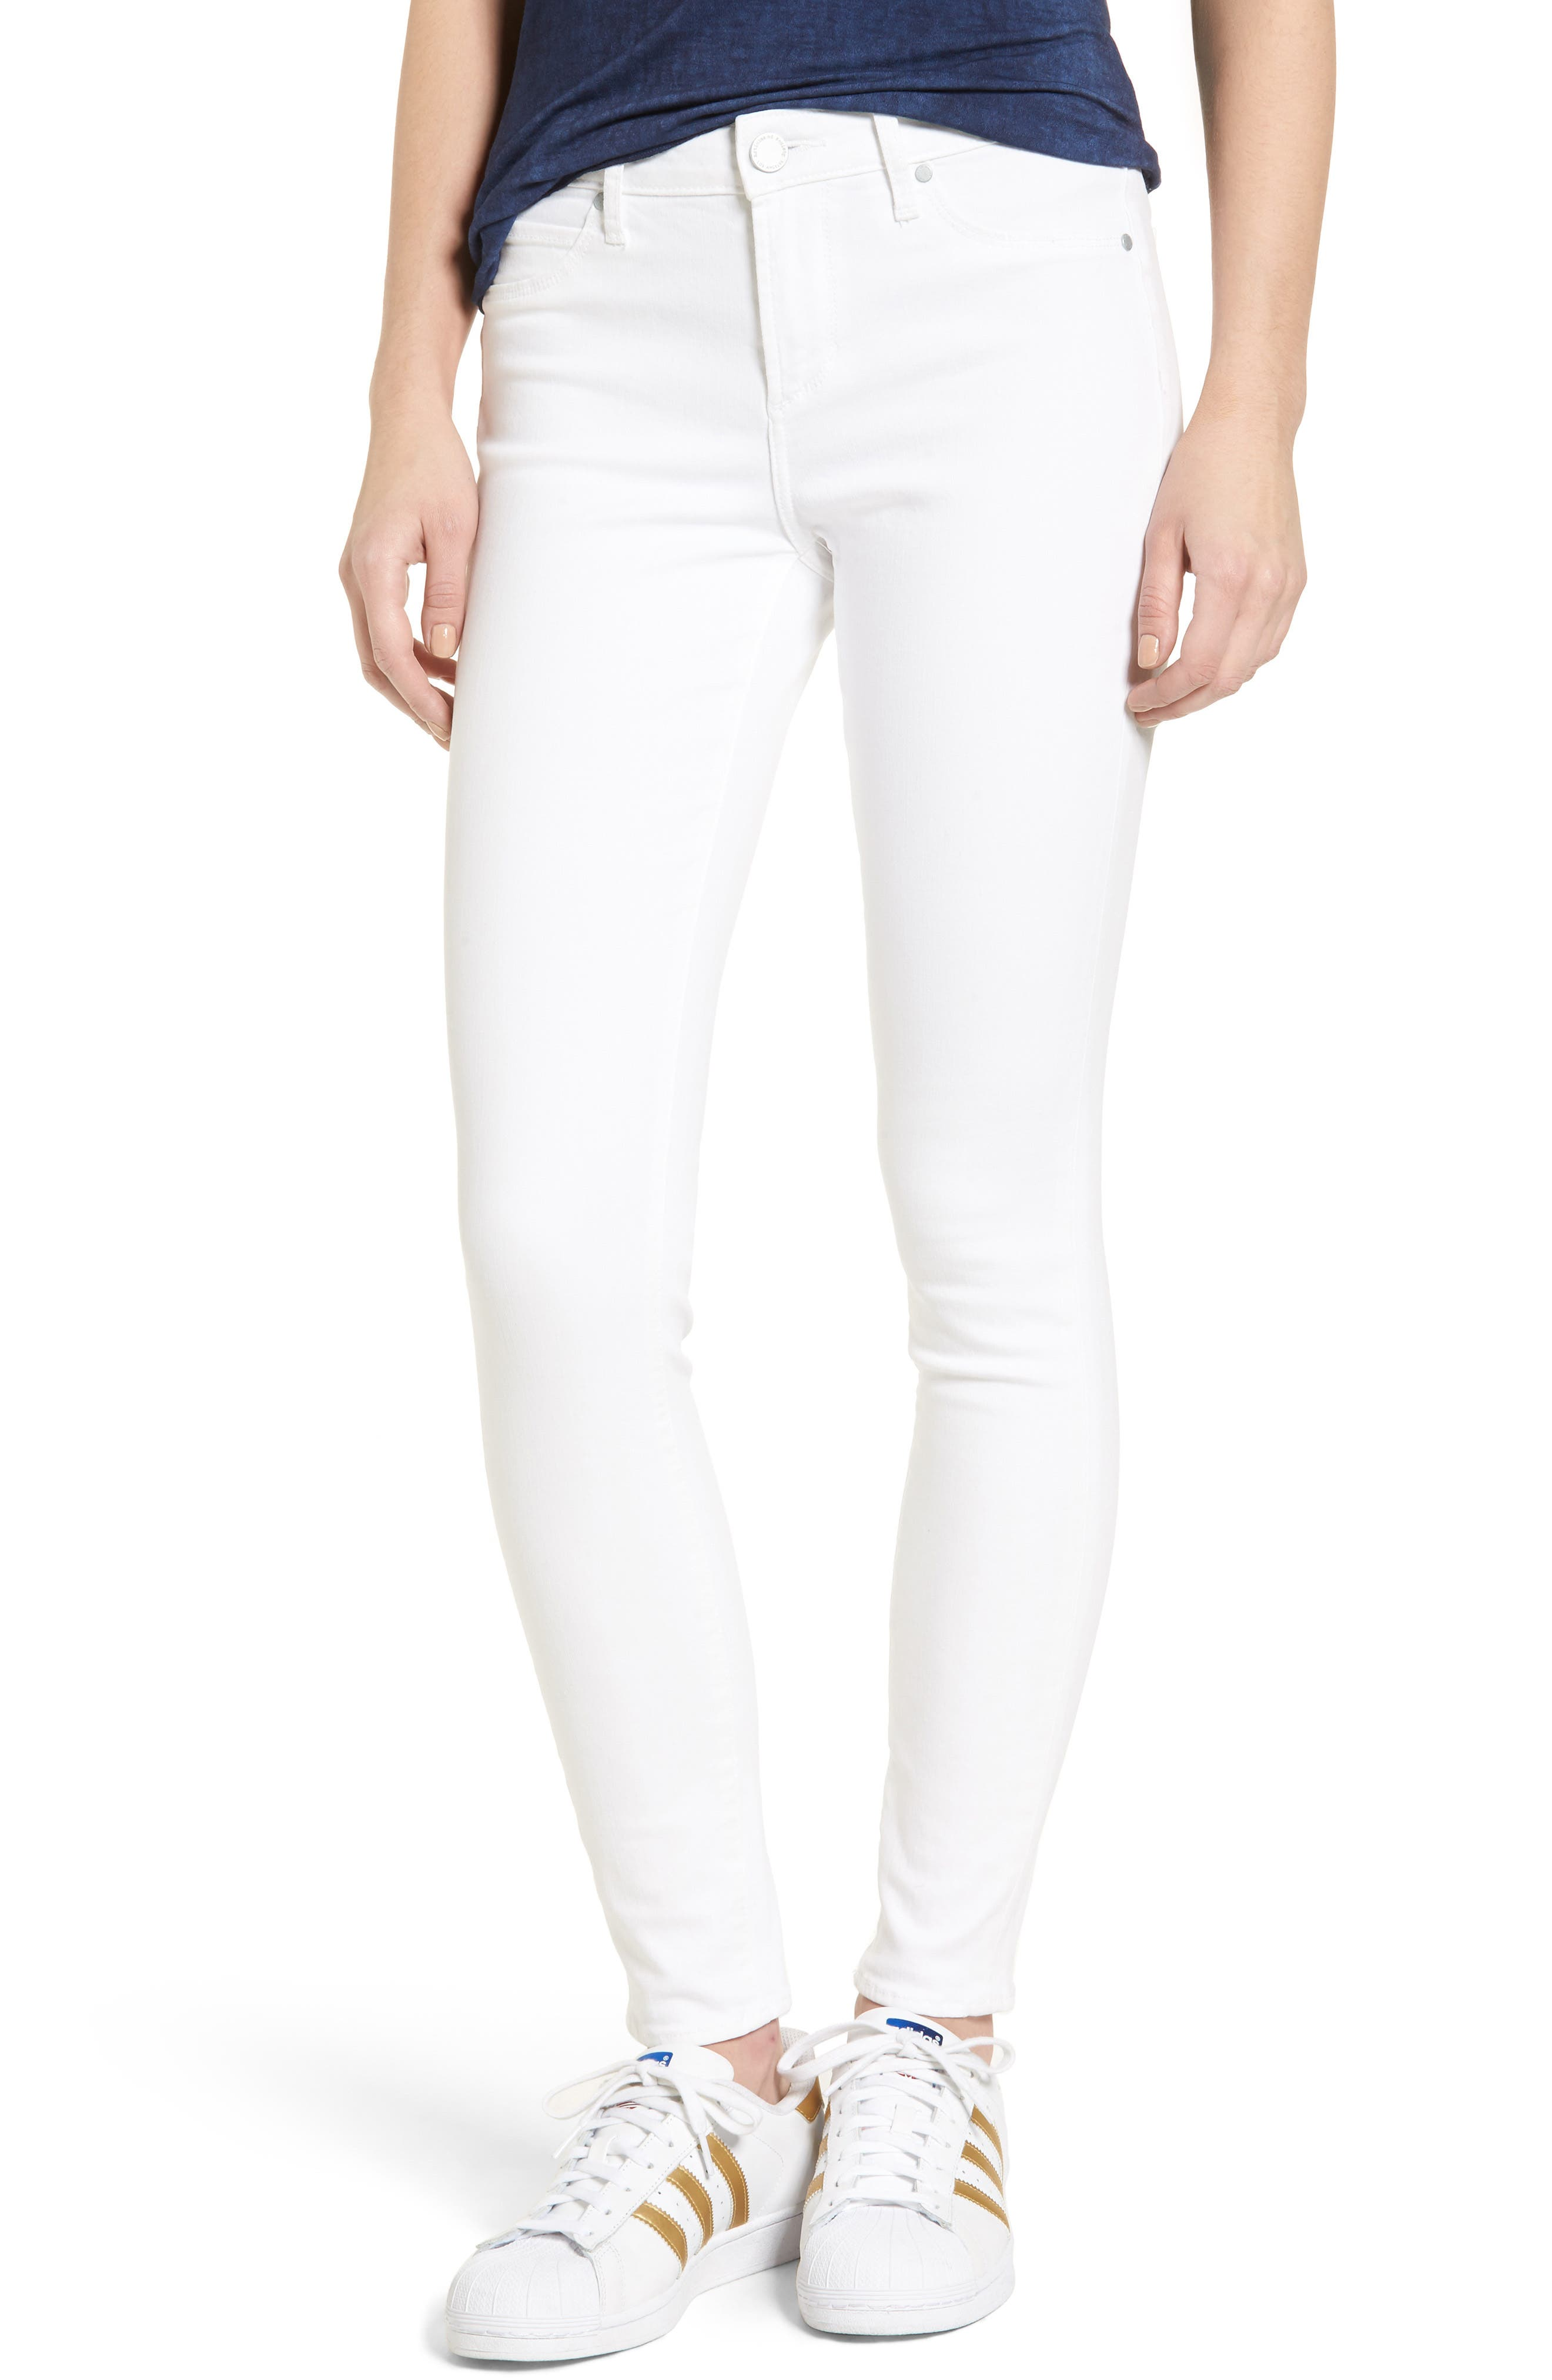 ARTICLES OF SOCIETY Sarah Skinny Jeans, Main, color, 118